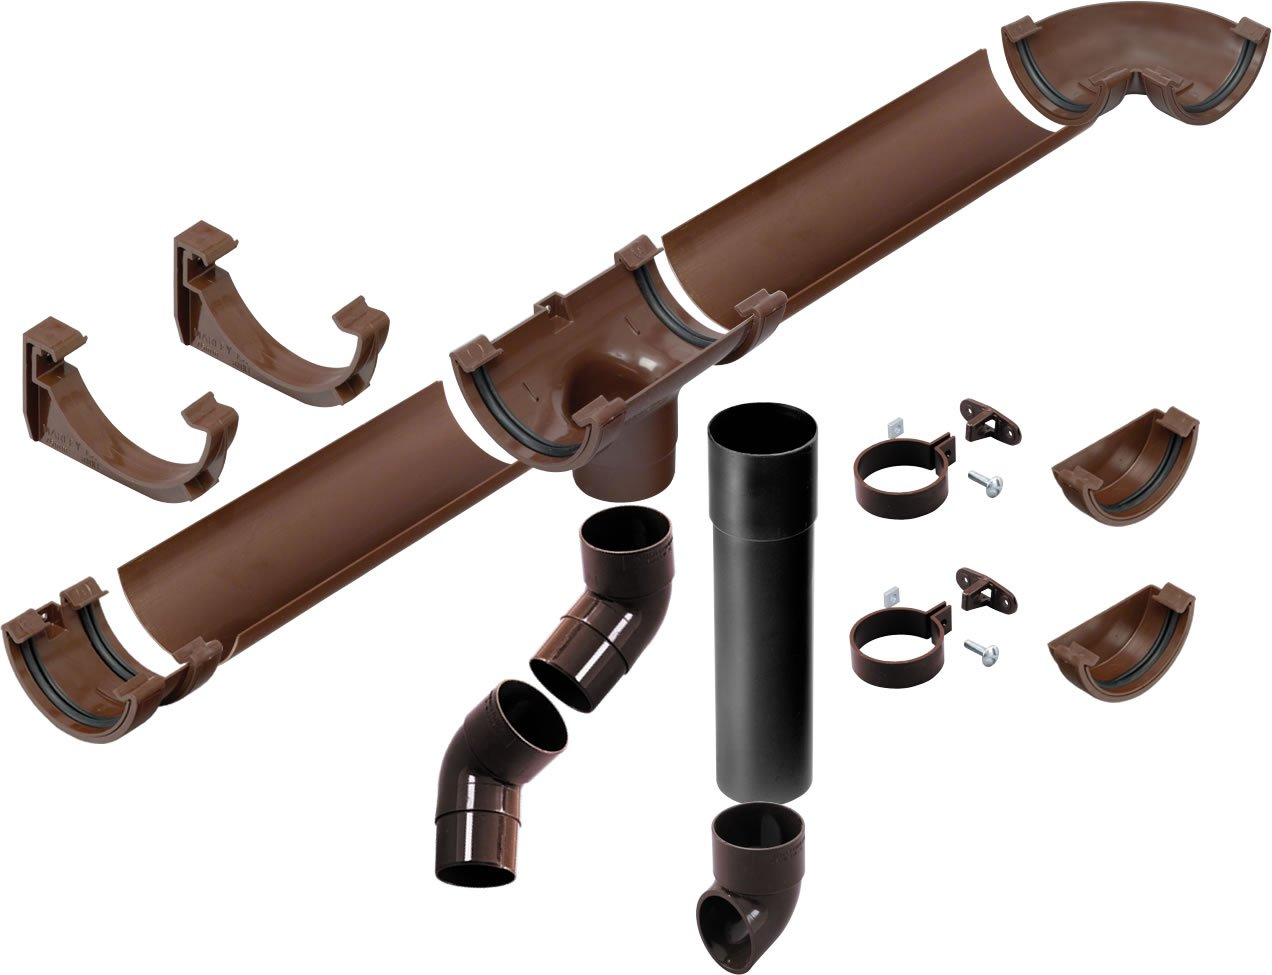 O'SO EEZY 75mm half round Miniline complete Shed Guttering and Downpipe kit Black (up to 4 metre - 12 feet) O'SO EEZY EP-SHKT1b